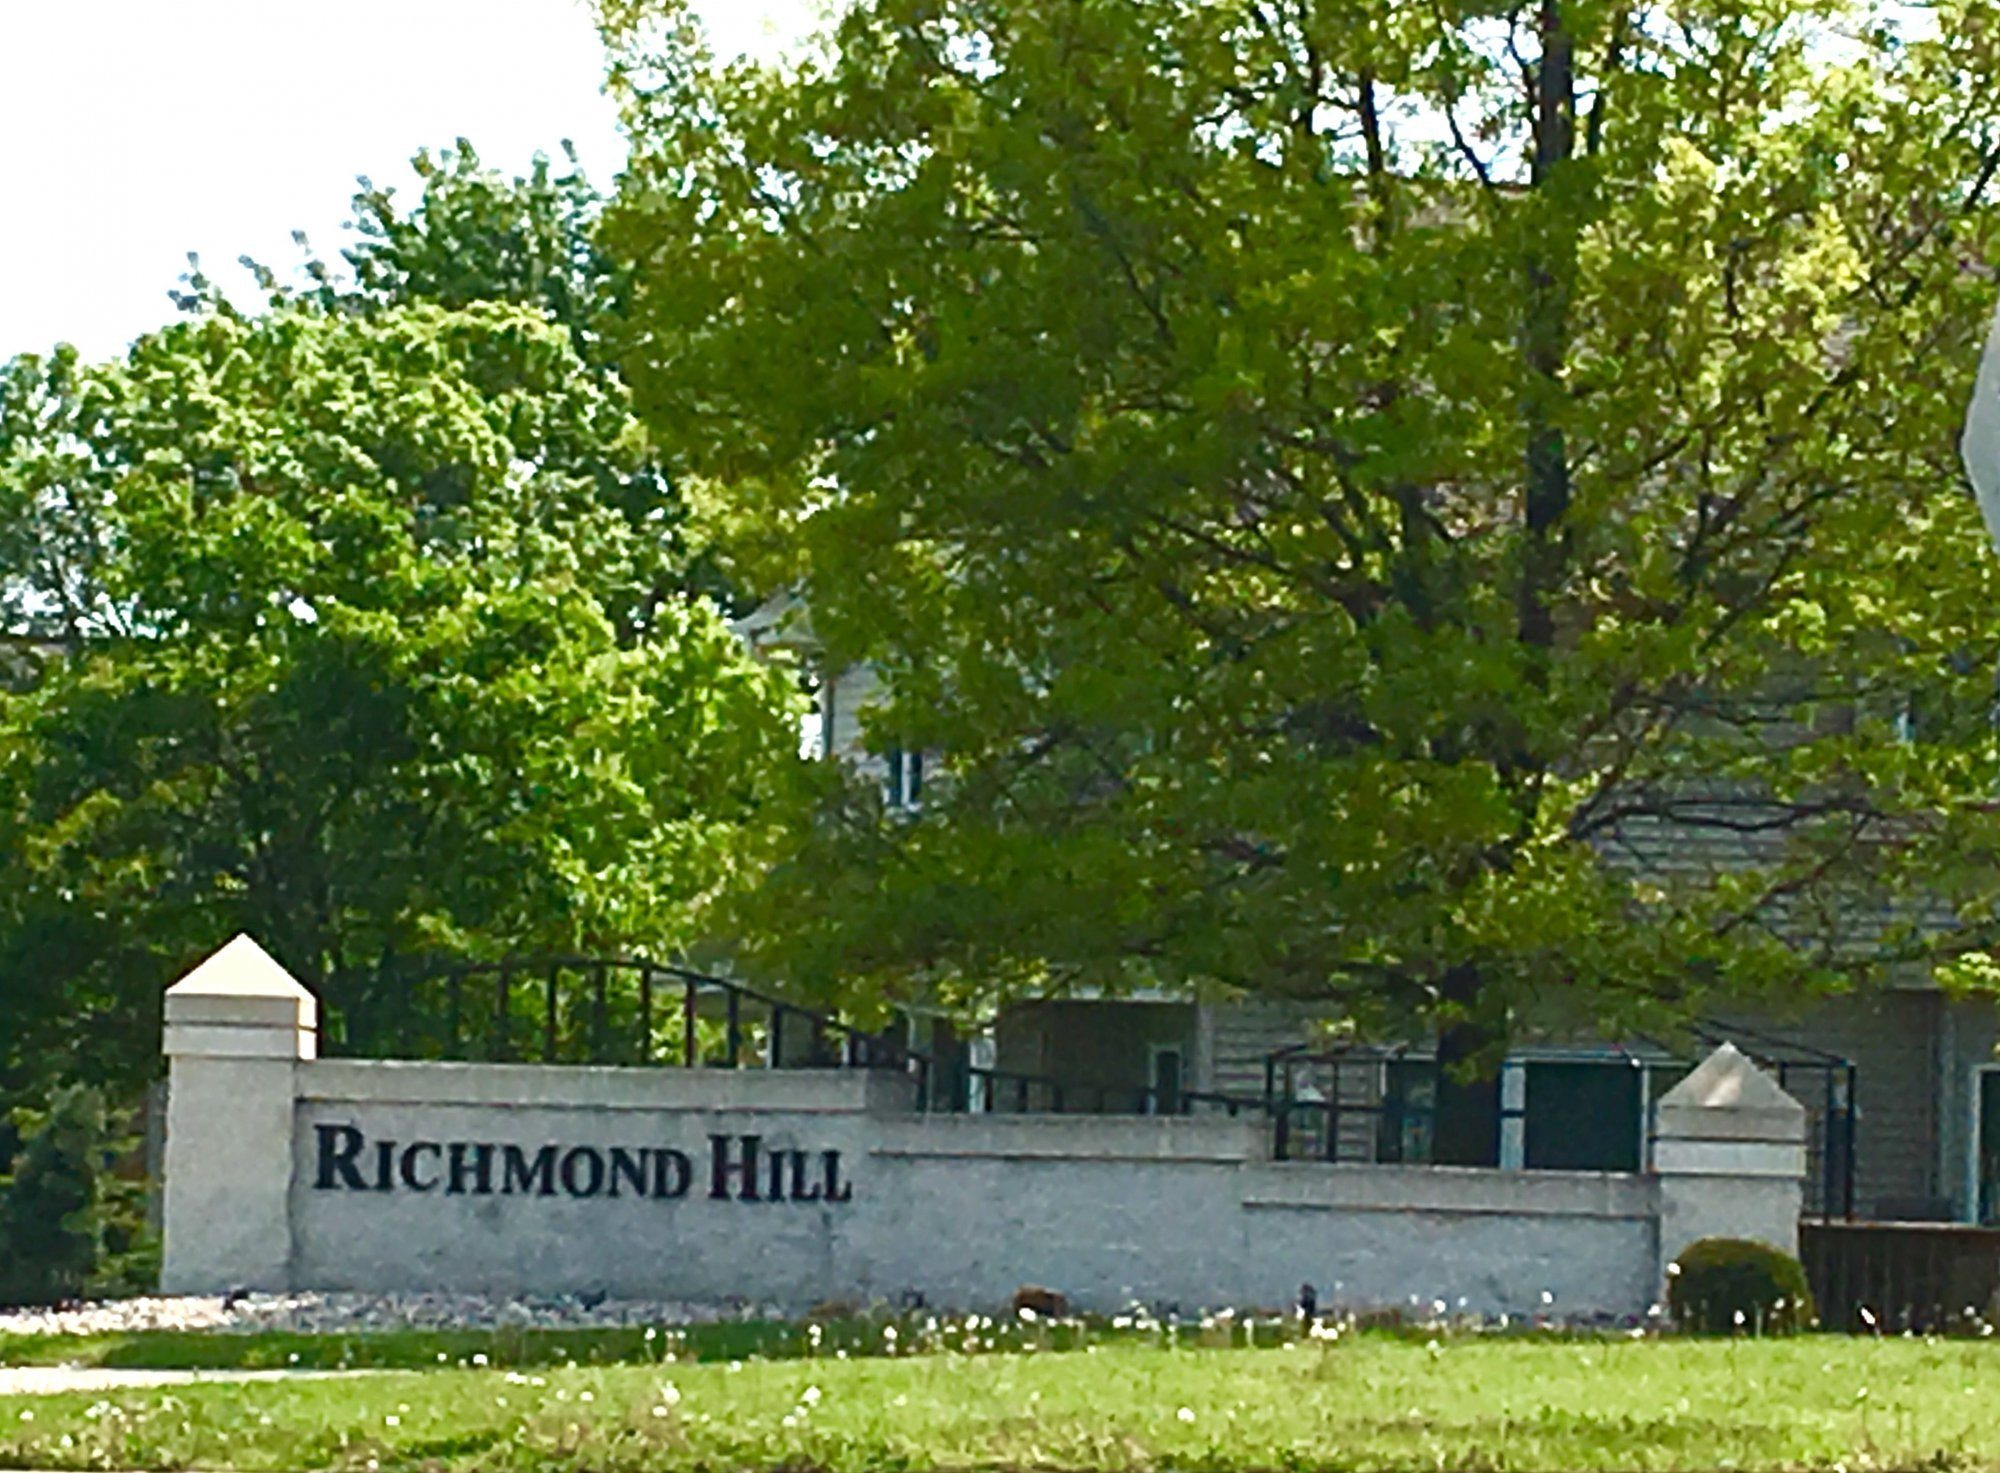 Richmond hill condos for sale lake city homes for Richmond hill home builders